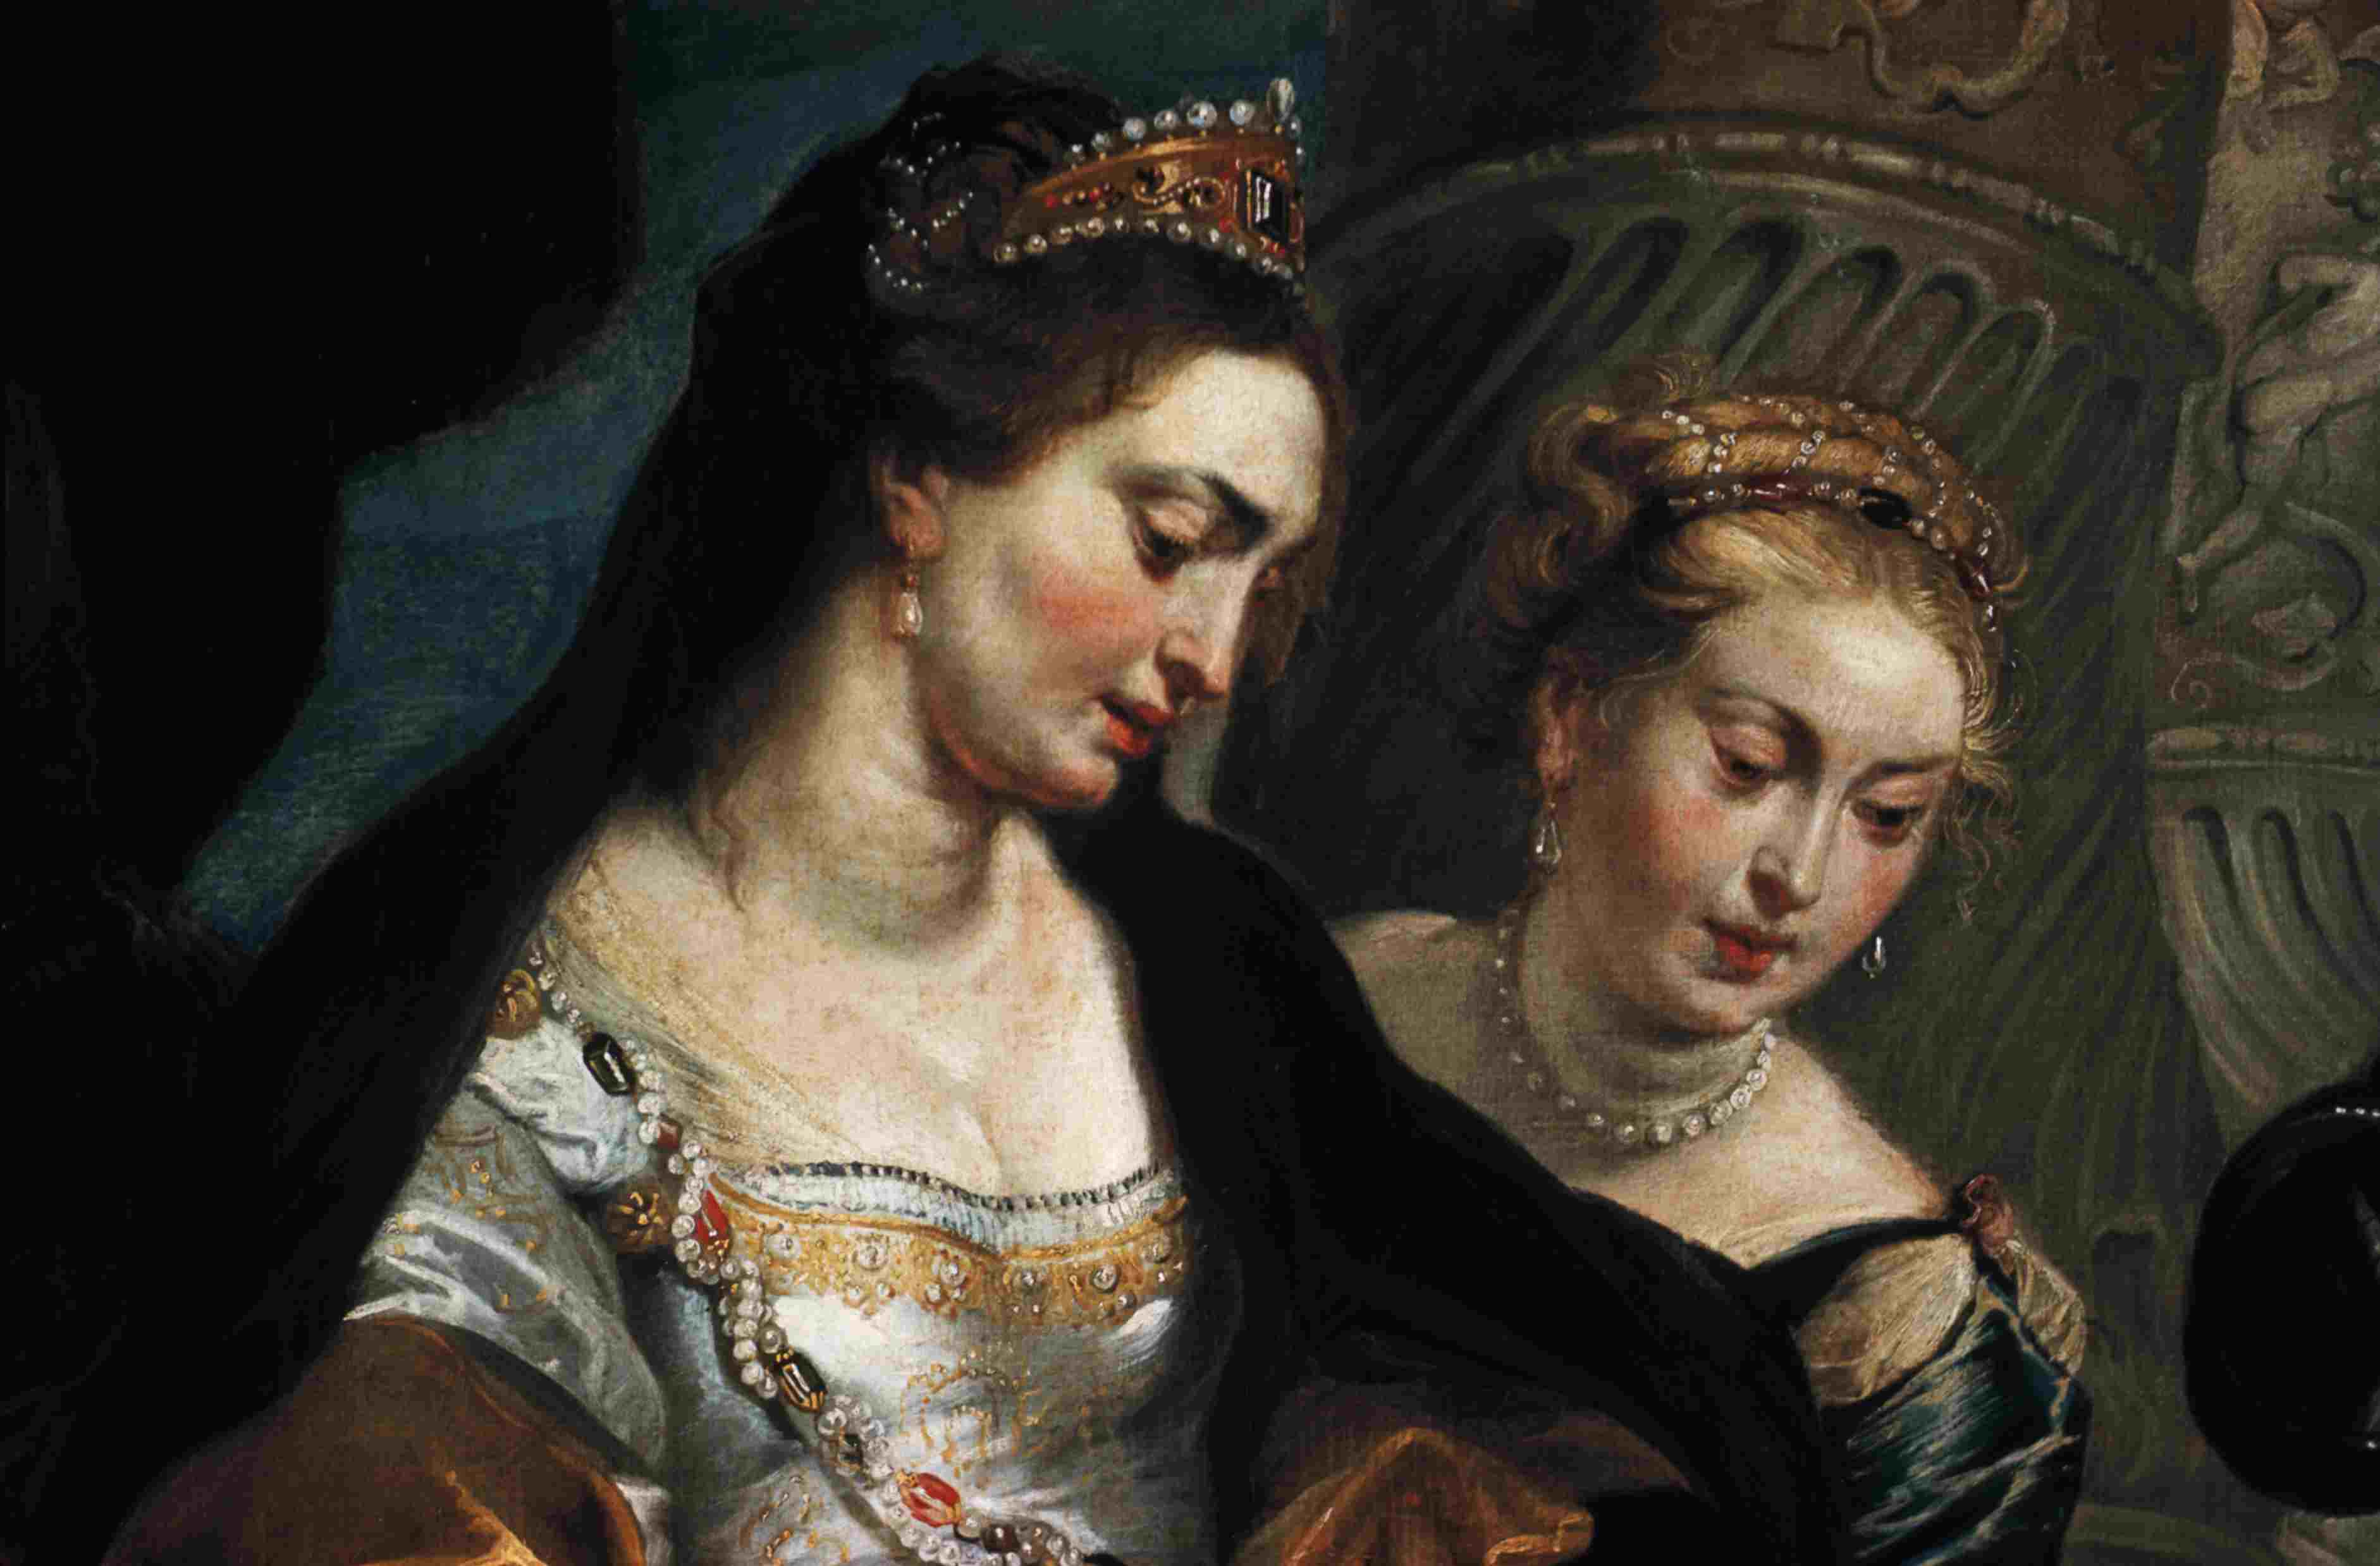 Detail Showing Queen and Courtier from The Head of Cyrus Brought to Queen Tomyris by Peter Paul Rubens